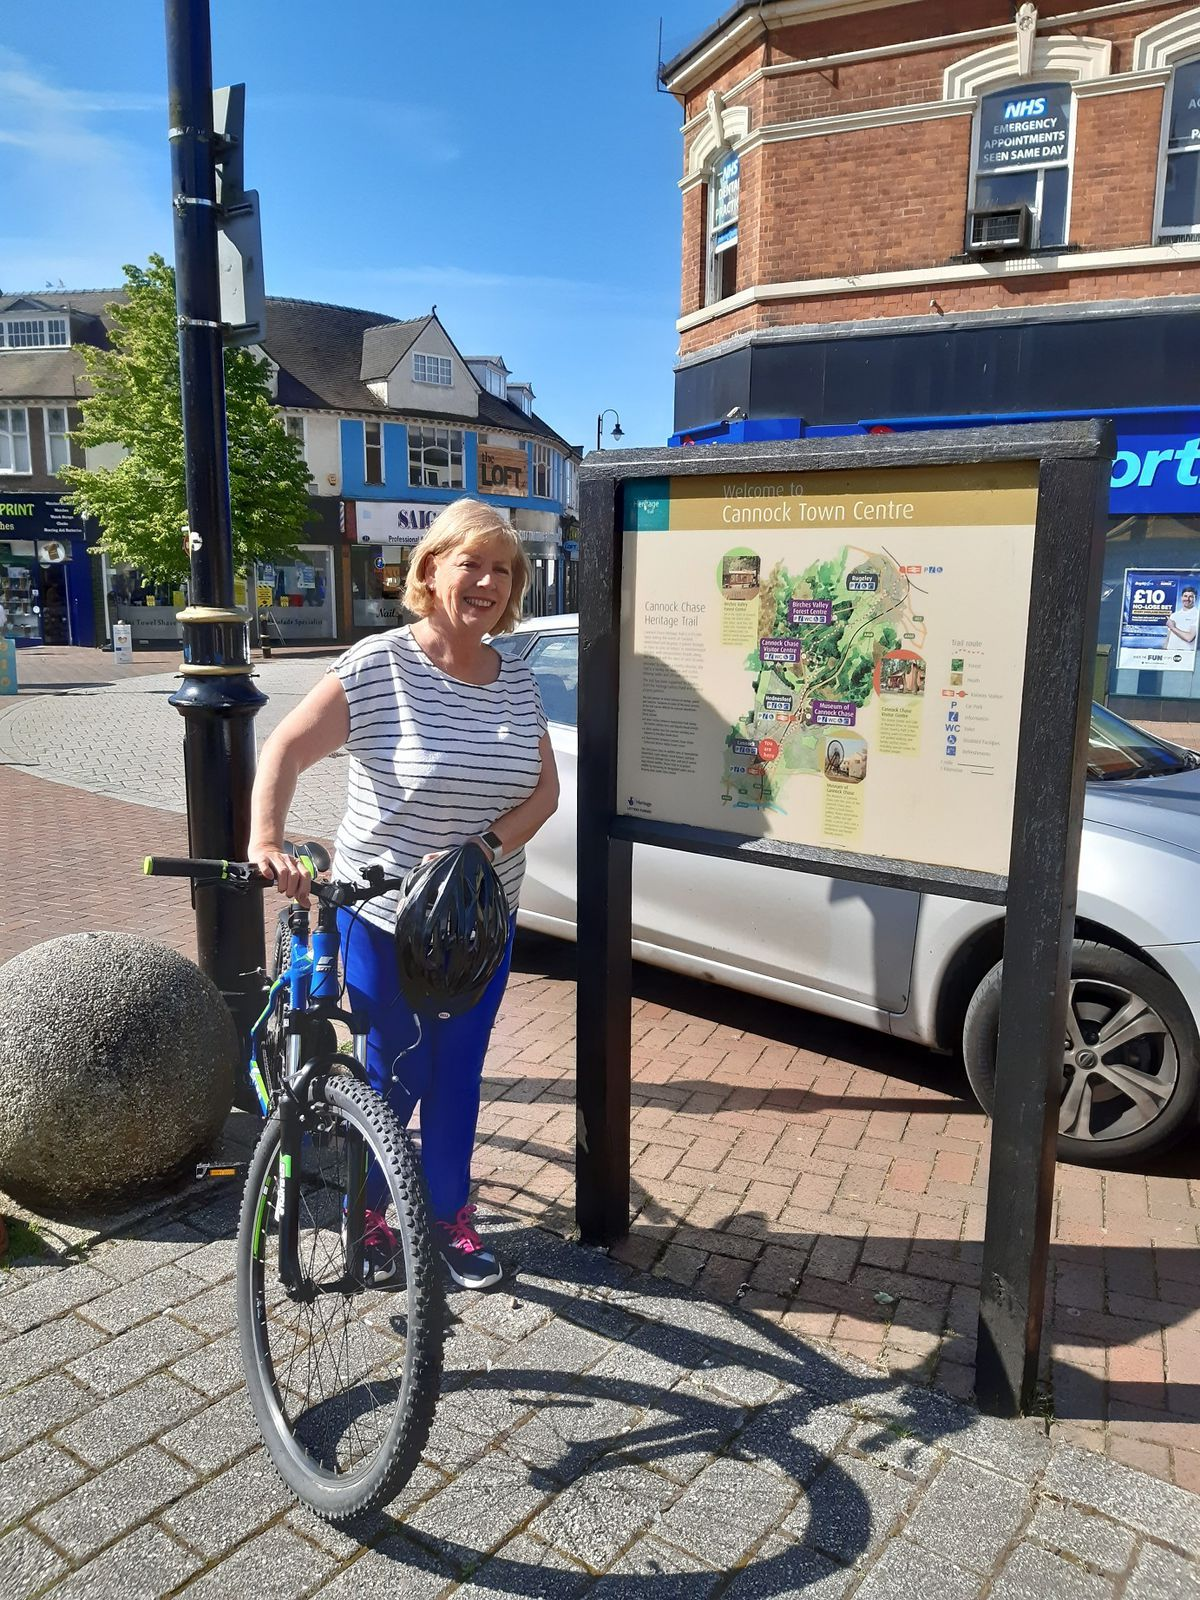 Councillor Adrienne Fitzgerald, Portfolio Holder for Heritage and Leisure, by one of the current Cannock Chase Heritage Trail information boards at High Green in Cannock town centre.